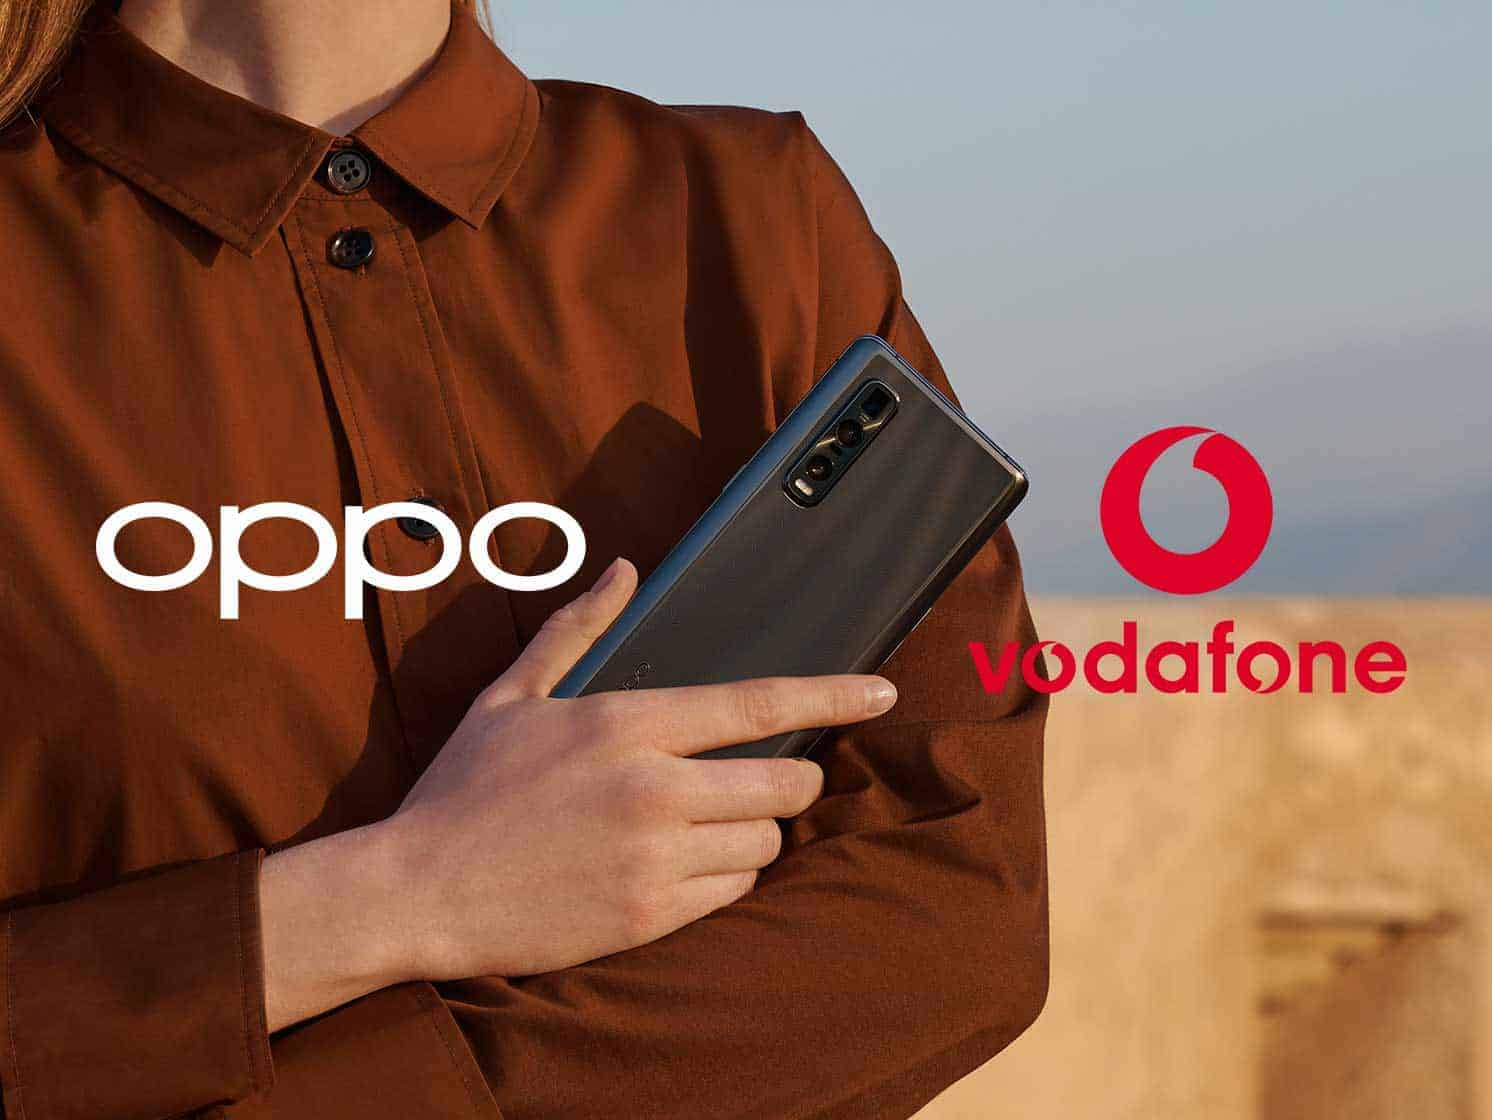 Oppo announces partnership with Vodafone to expand in Europe